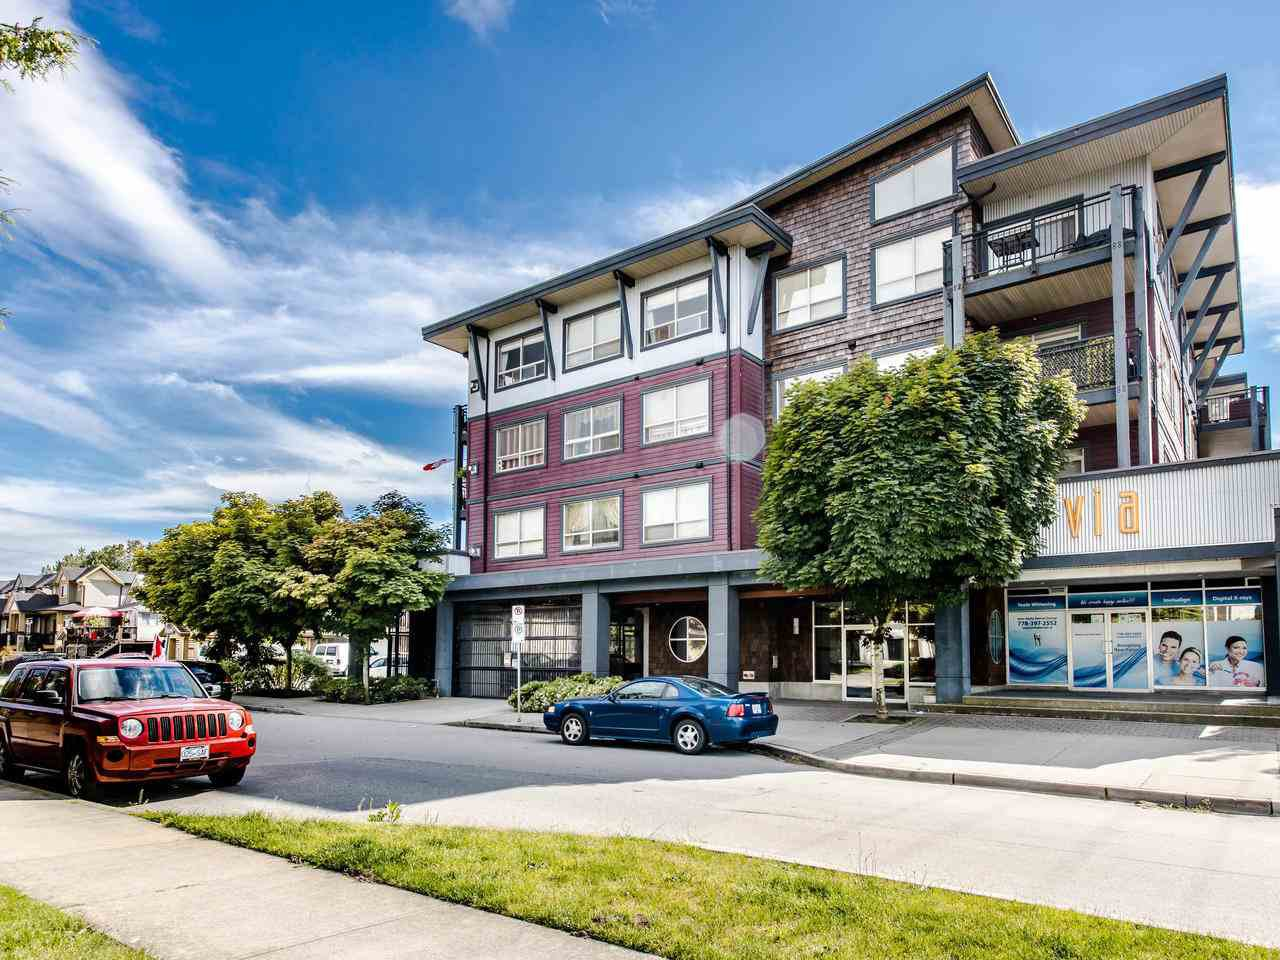 Main Photo: 409 288 HAMPTON Street in New Westminster: Queensborough Condo for sale : MLS®# R2478799